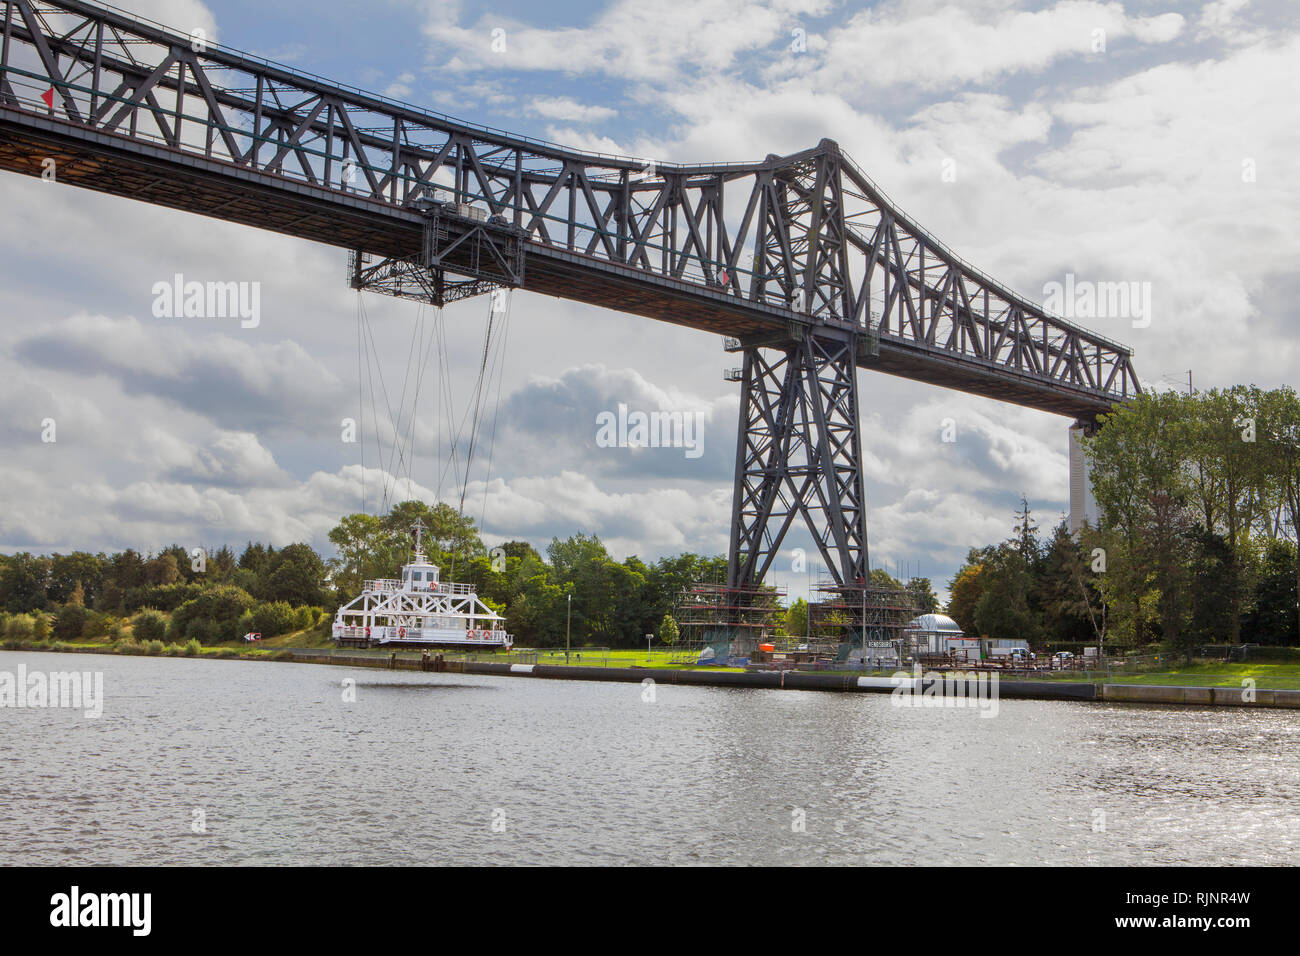 Rendsburg High Bridge with suspension ferry, Kiel Canal, Rendsburg, Schleswig-Holstein, Germany Stock Photo